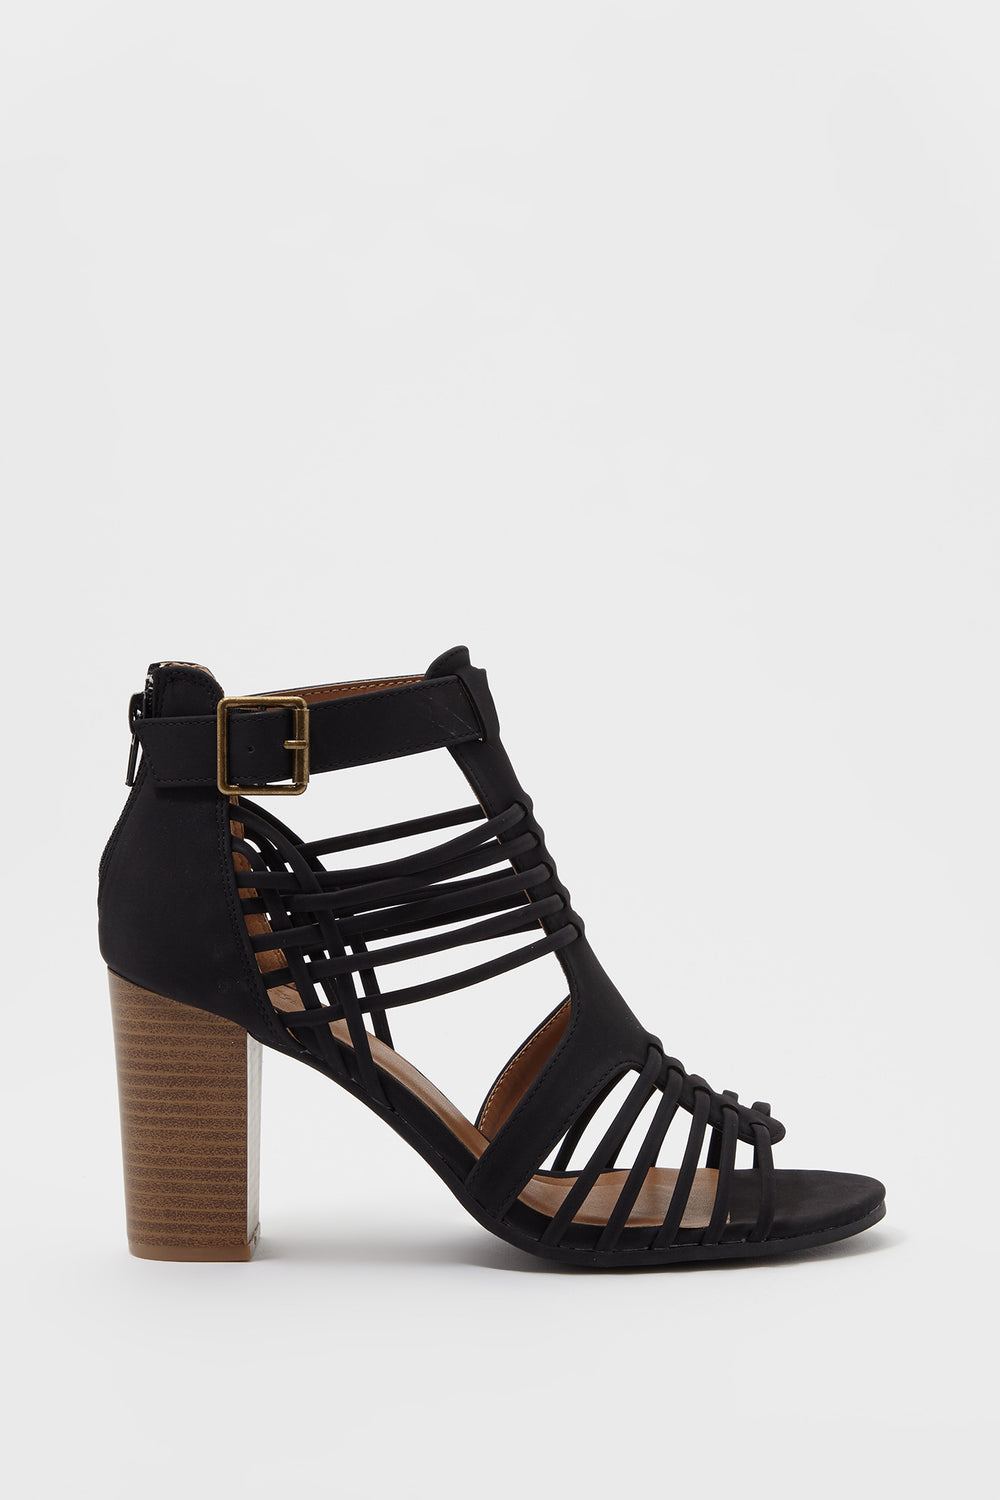 Caged Strappy Block Heel Sandal Black